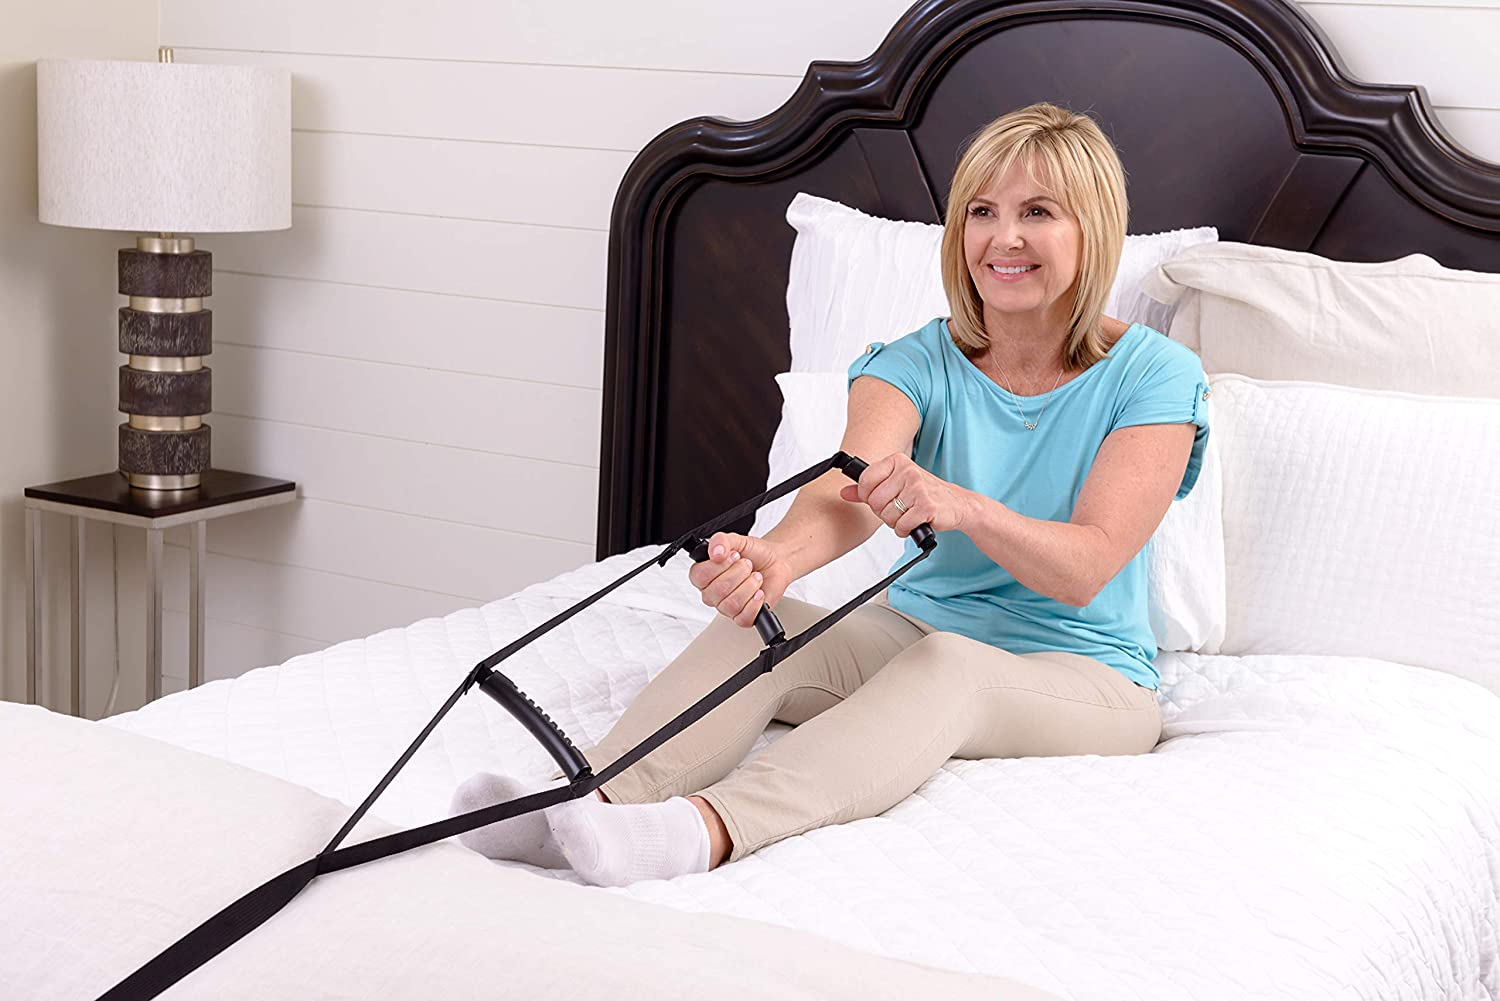 Stander BedCaddie Bed Ladder Sit-Up In-Bed Support Assist Handle with Adjustable Nylon Strap, Three Ergonomic Hand Grips